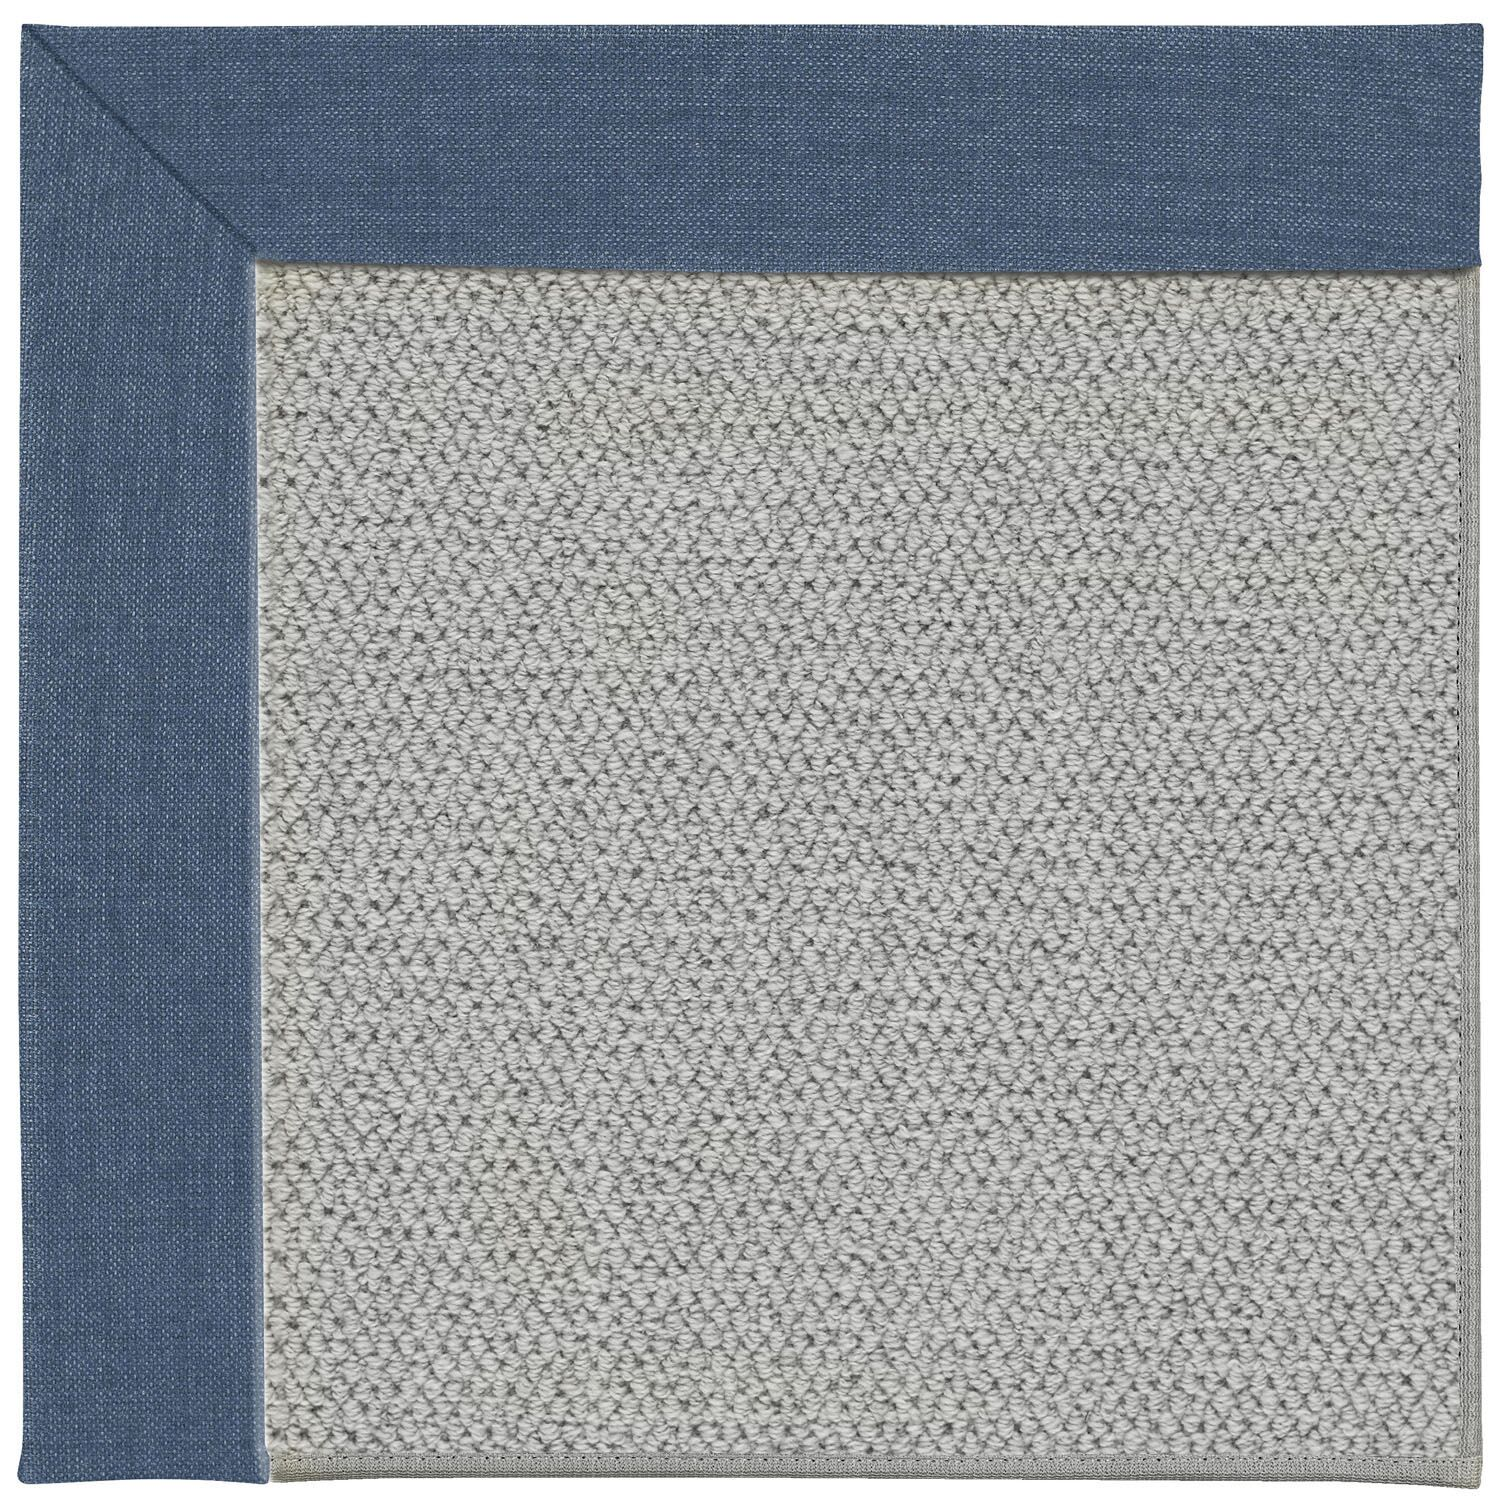 Barrett Machine Tufted Caribbean Area Rug Rug Size: Rectangle 5' x 8'